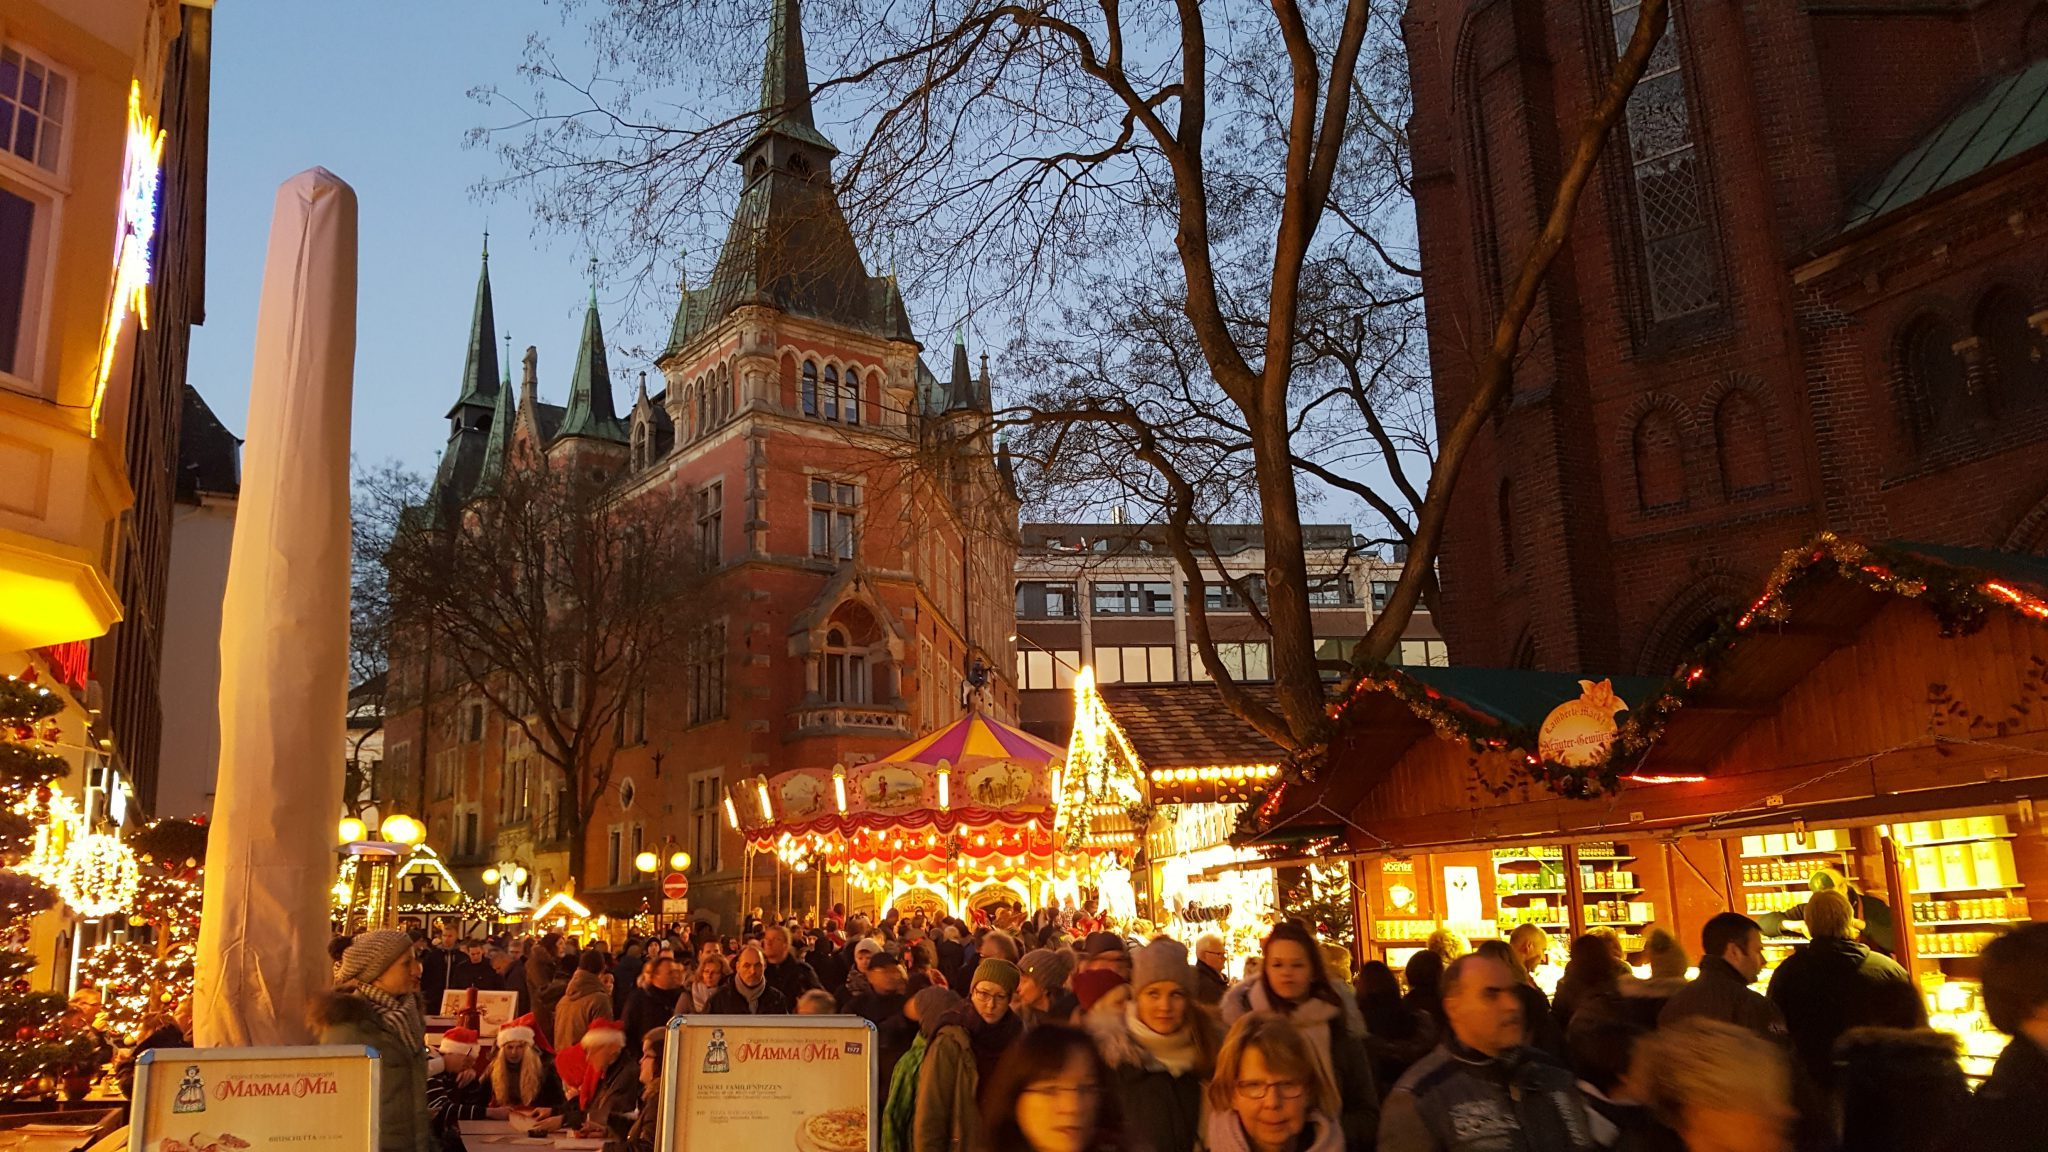 One of many Christmas Markets in Germany; this is Oldenburg. In the background, the rathaus (city hall). On the right, the St. Lamberti church looms behind the brightly-lit stalls.